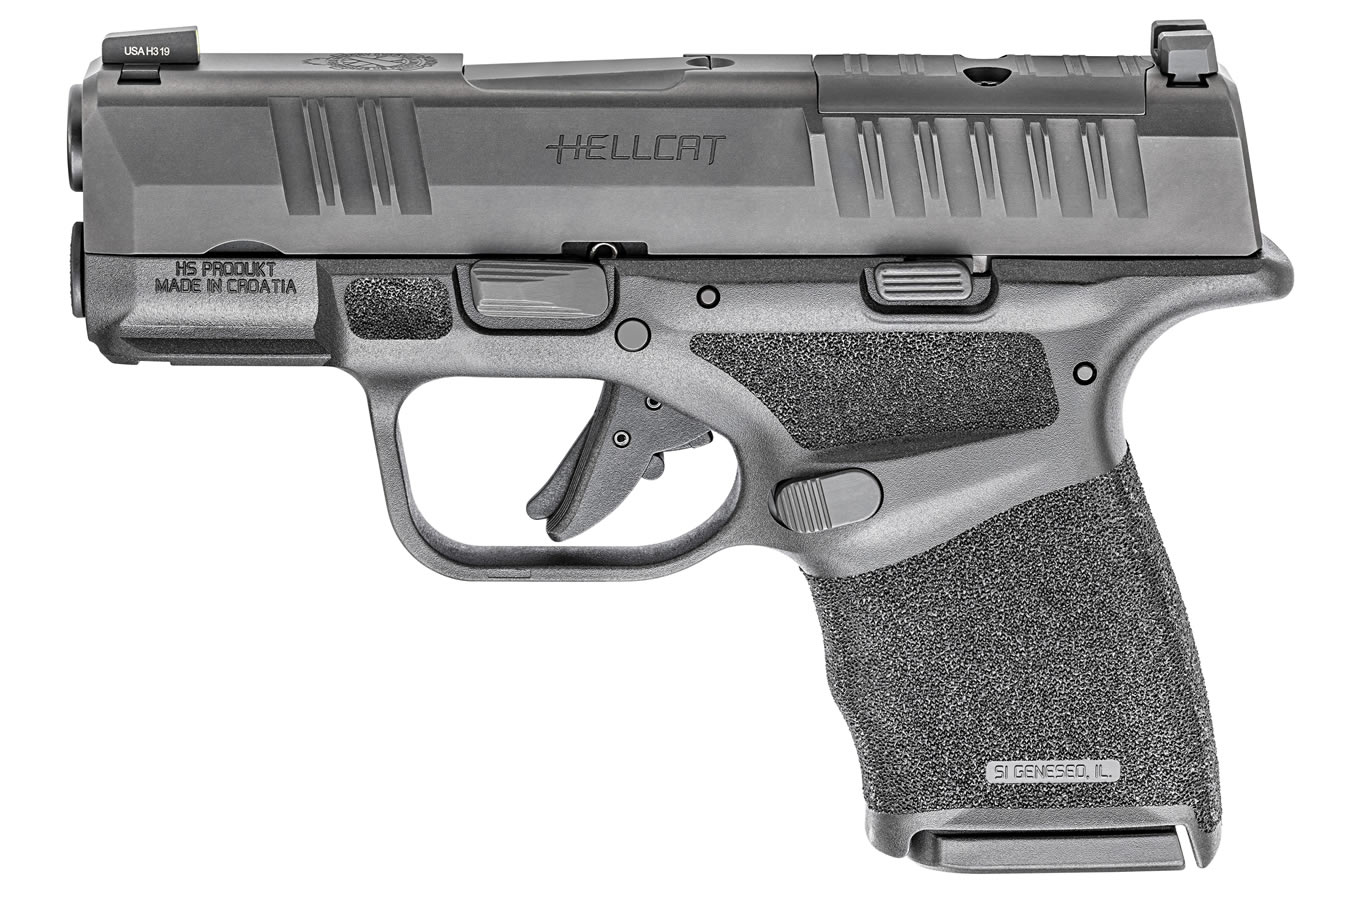 No. 6 Best Selling: SPRINGFIELD HELLCAT 9MM BLACK OPTICS READY PISTOL